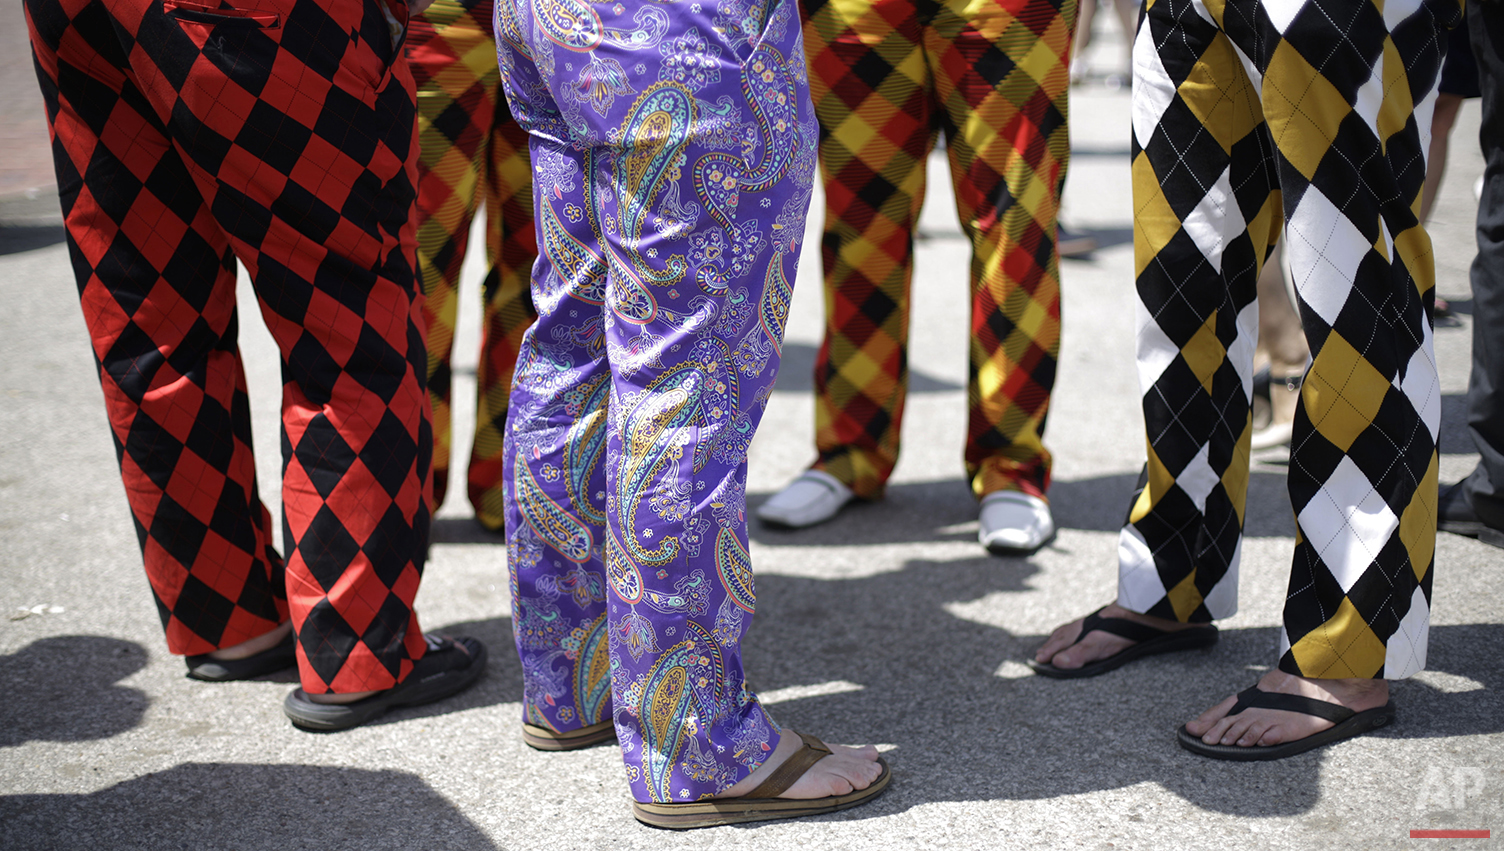 Spectators wear colorful pants before the 140th running of the Kentucky Derby horse race at Churchill Downs, Saturday, May 3, 2014, in Louisville, Ky. (AP Photo/David Goldman)